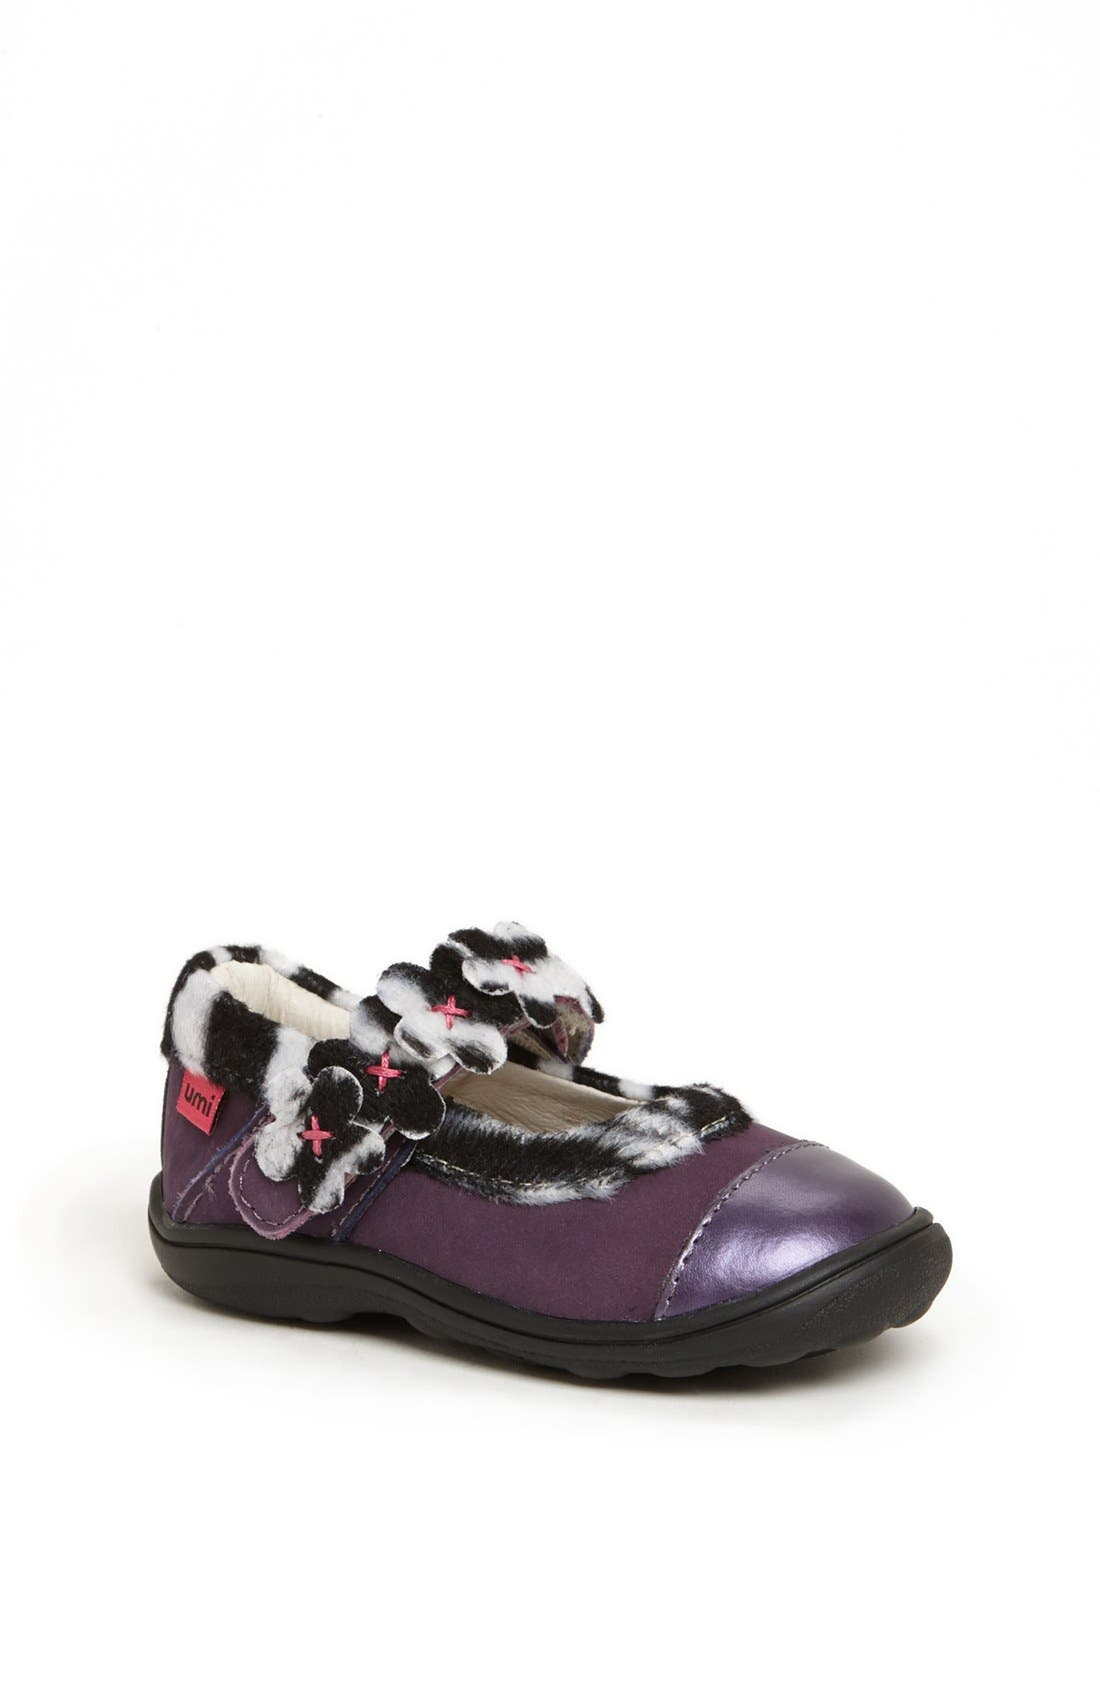 Alternate Image 1 Selected - Umi 'Marnie' Mary Jane Flat (Walker & Toddler)